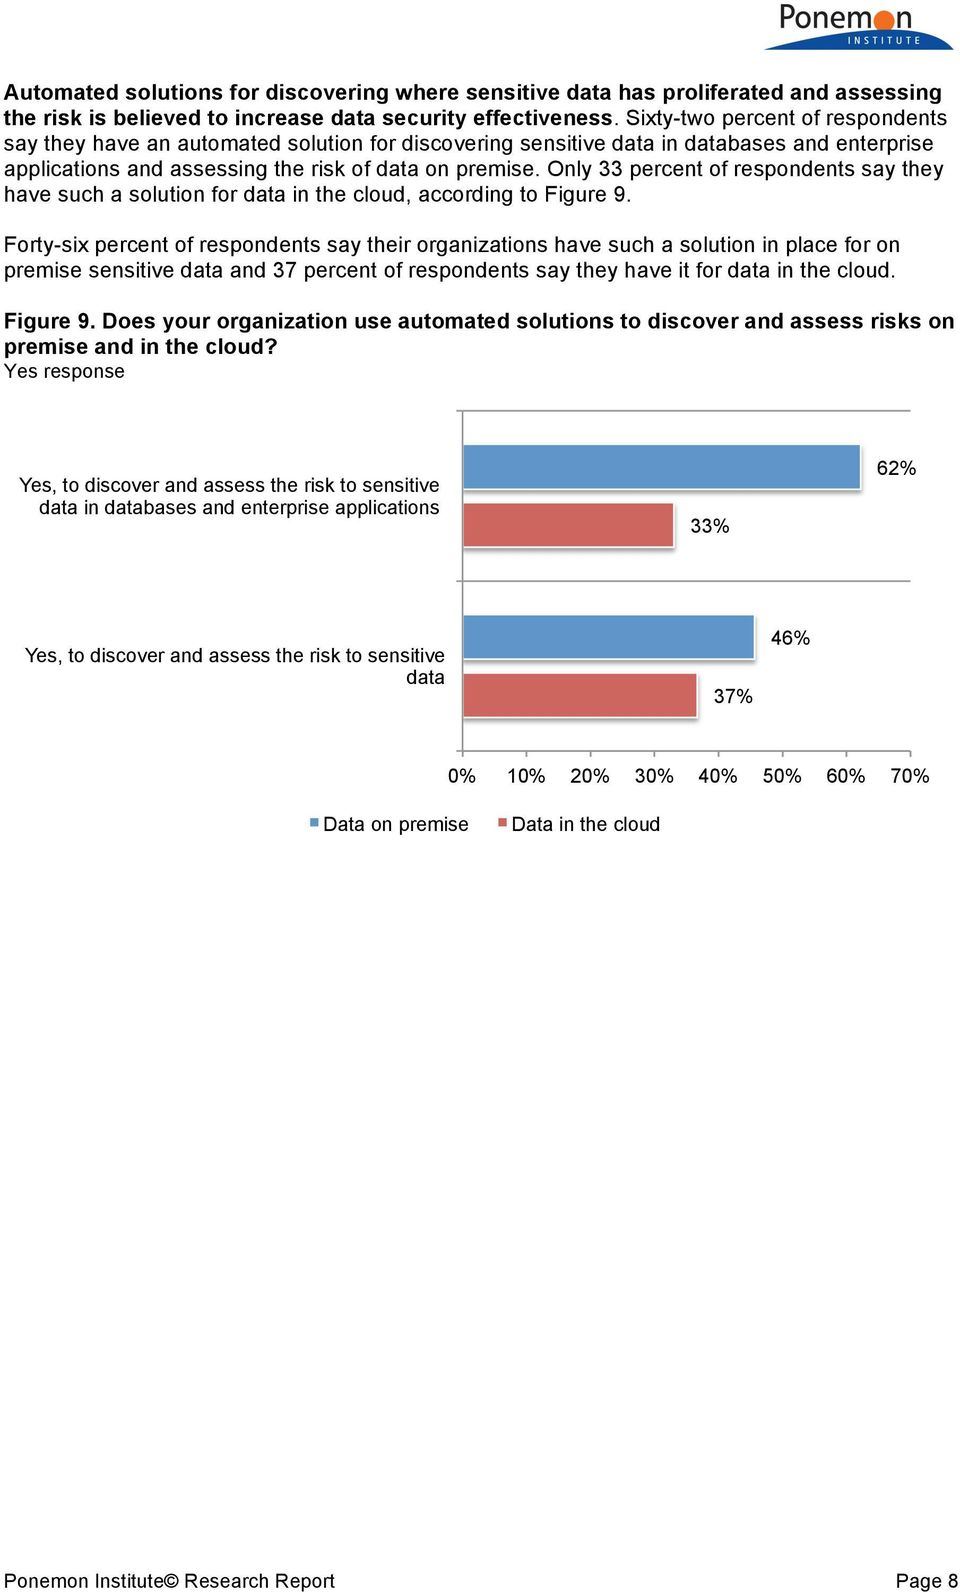 Only 33 percent of respondents say they have such a solution for data in the cloud, according to Figure 9.